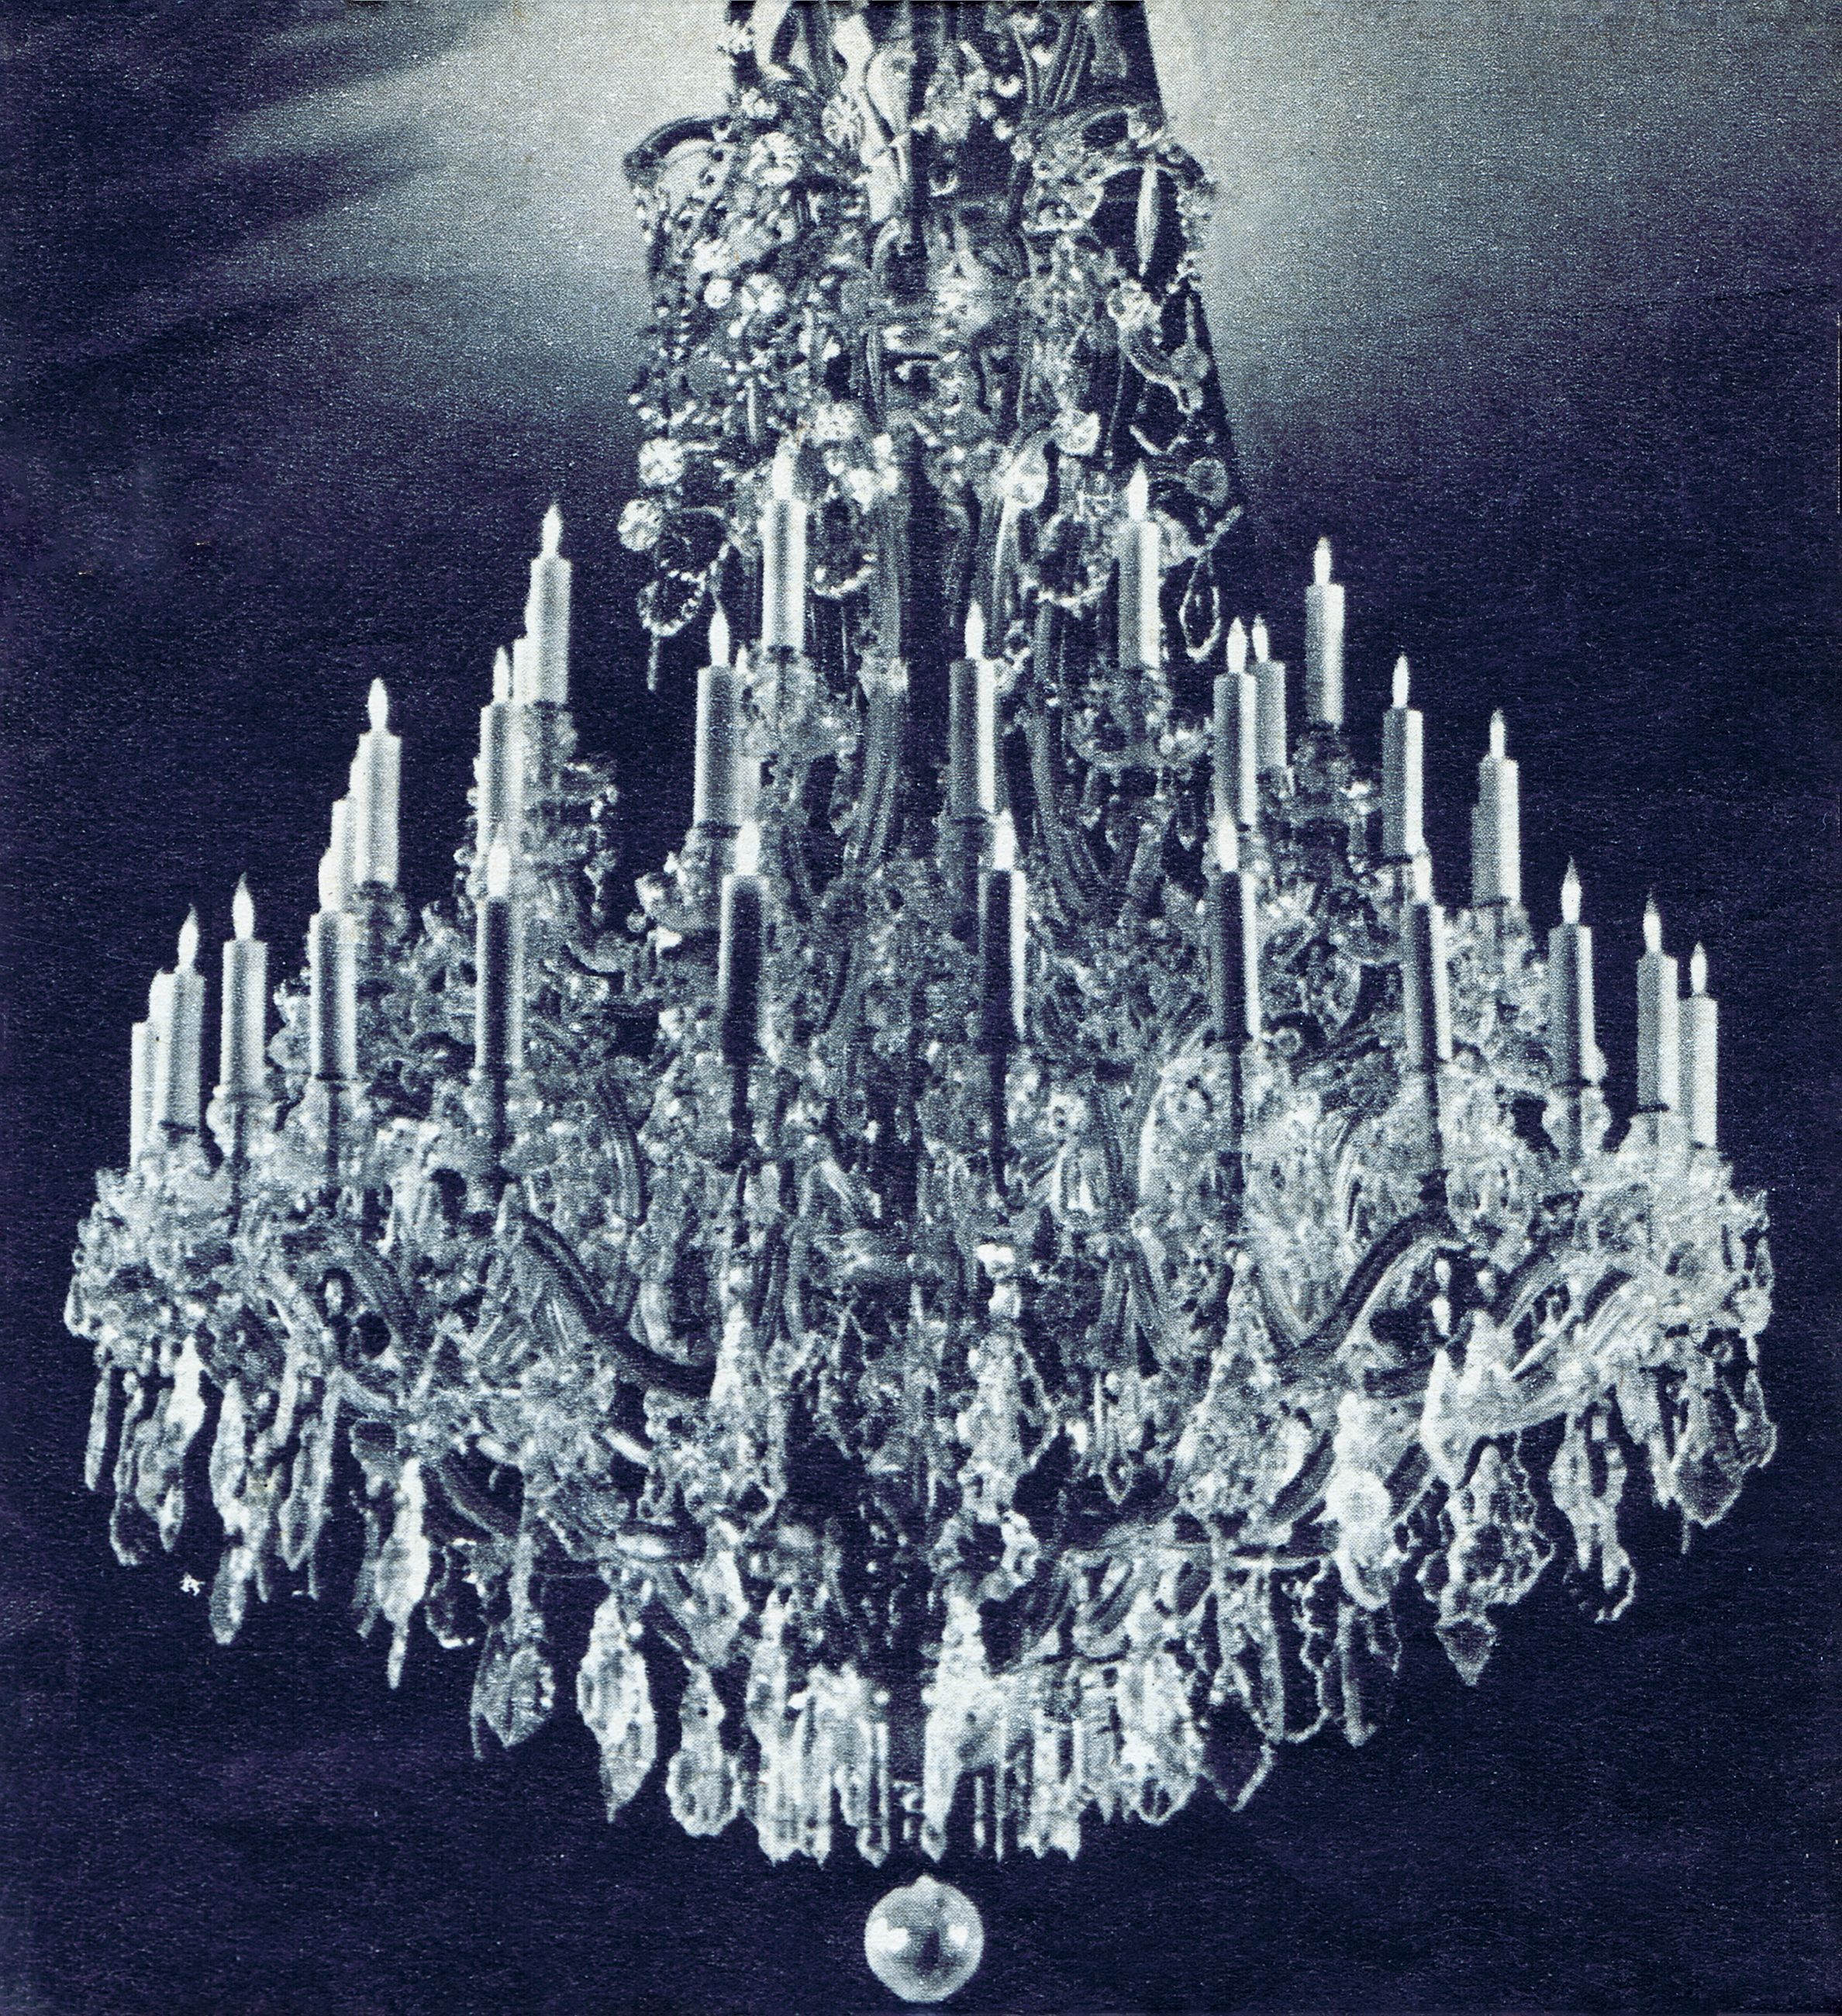 One of the beautiful crystal chandeliers that graced the main floor of hesss department store allentown pa